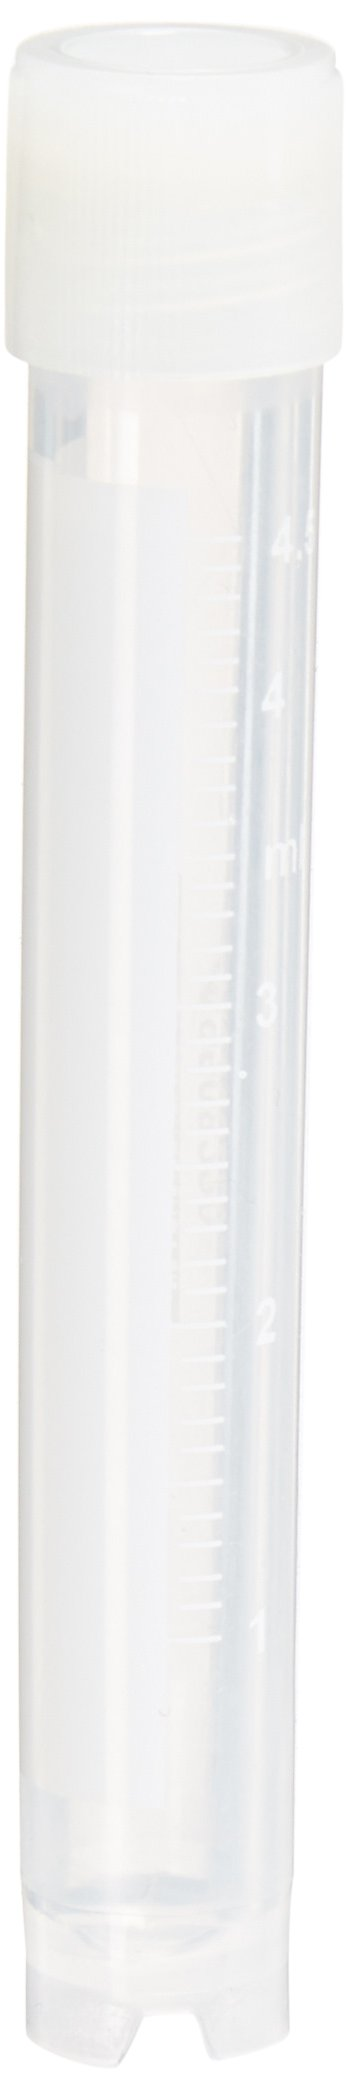 Globe Scientific CryoClear 3015-50 Polypropylene Barcoded Cryogenic Vial, 5mL Capacity, Sterile, External Threads, Attached Screwcap with Molded O-Ring, Round Bottom, Self-Standing (Case of 50)